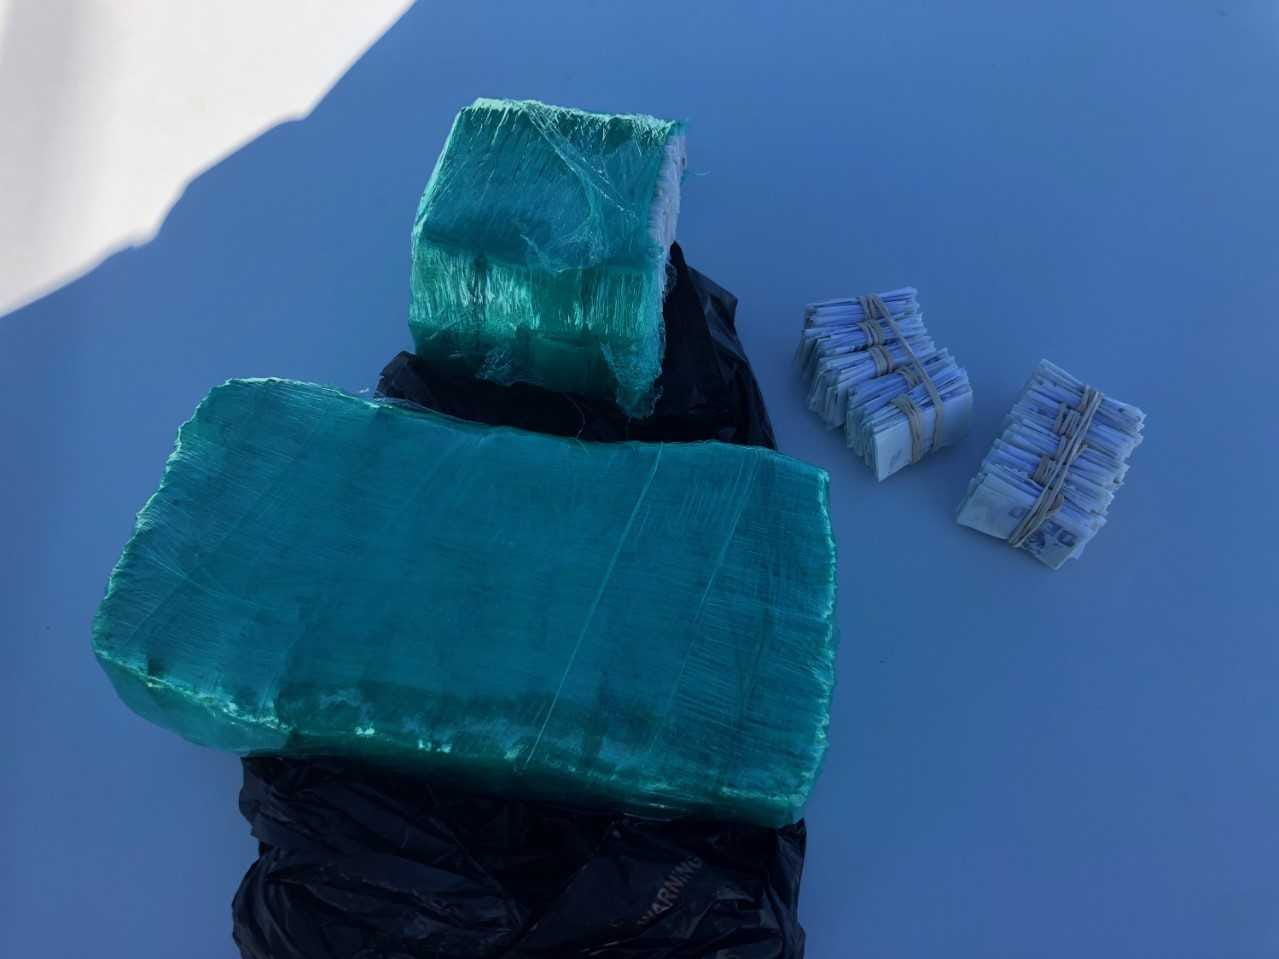 Georgetown police seize 1,500 bags of heroin from Virginia man